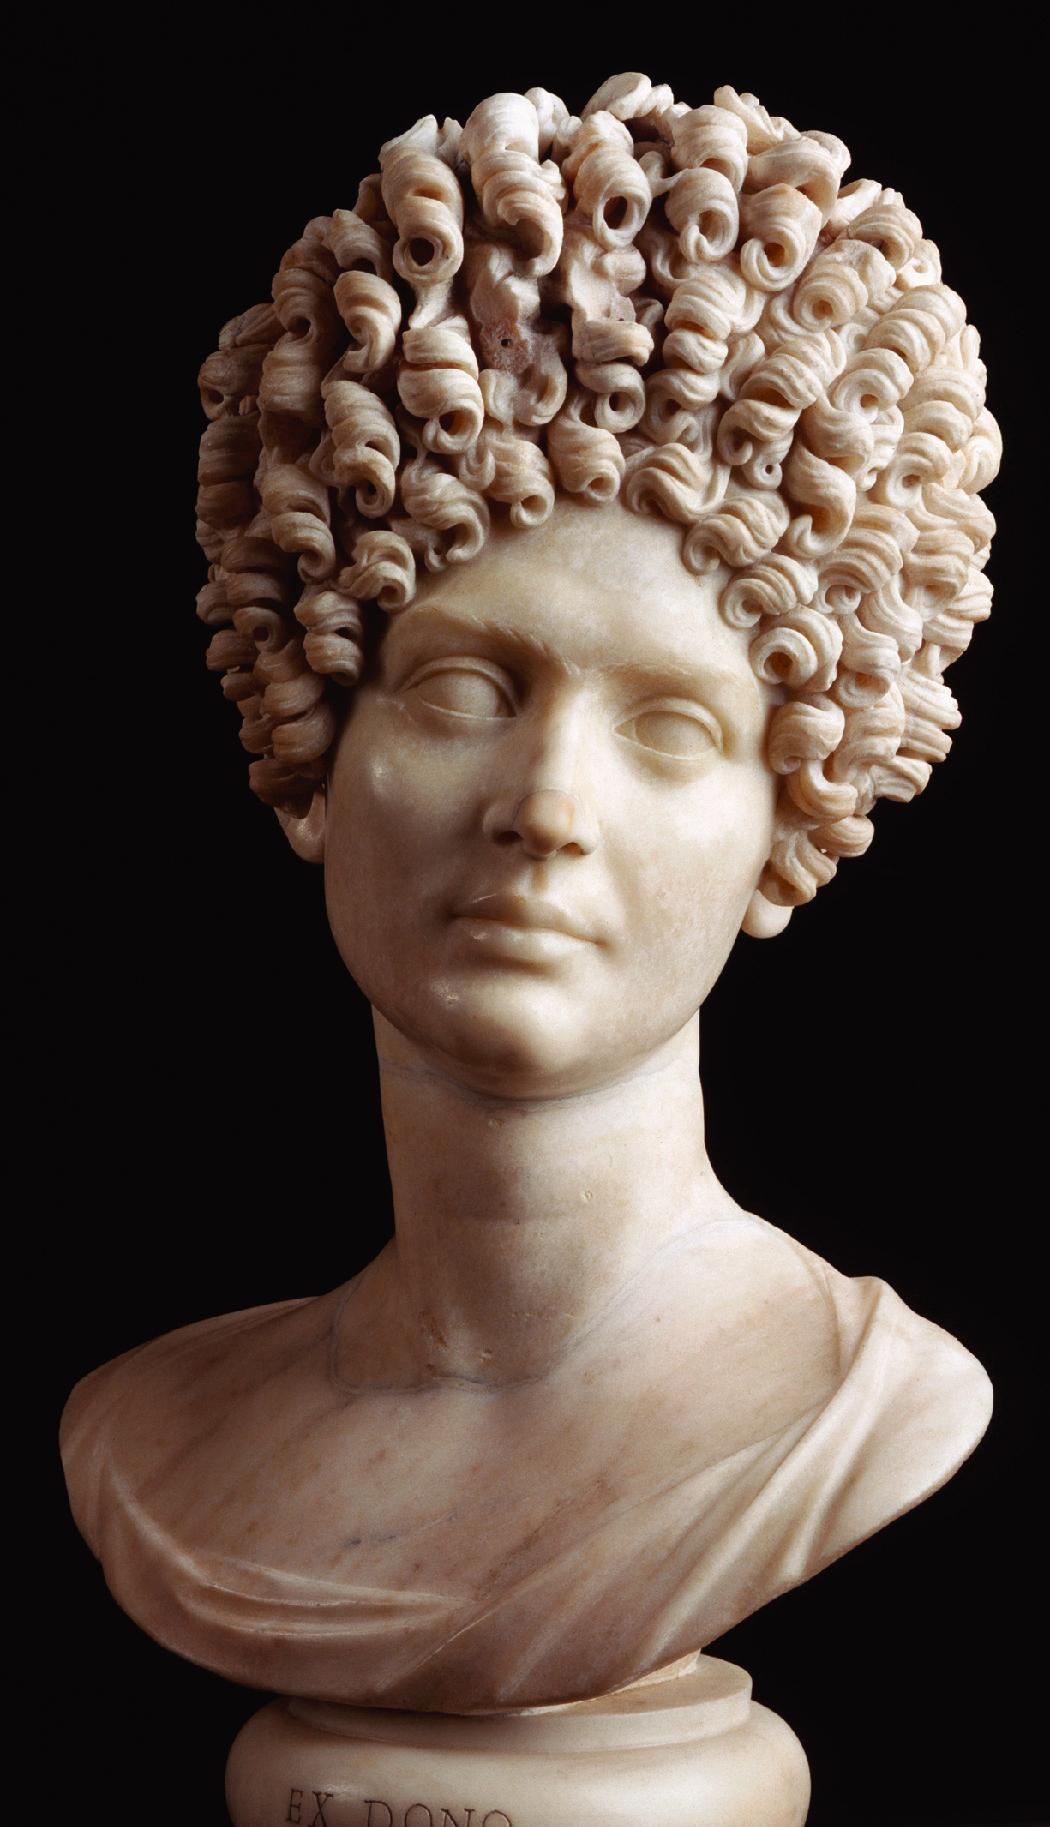 portrait_bust_of_a_flavian_woman_from_rome_italy_ca-_90_ce